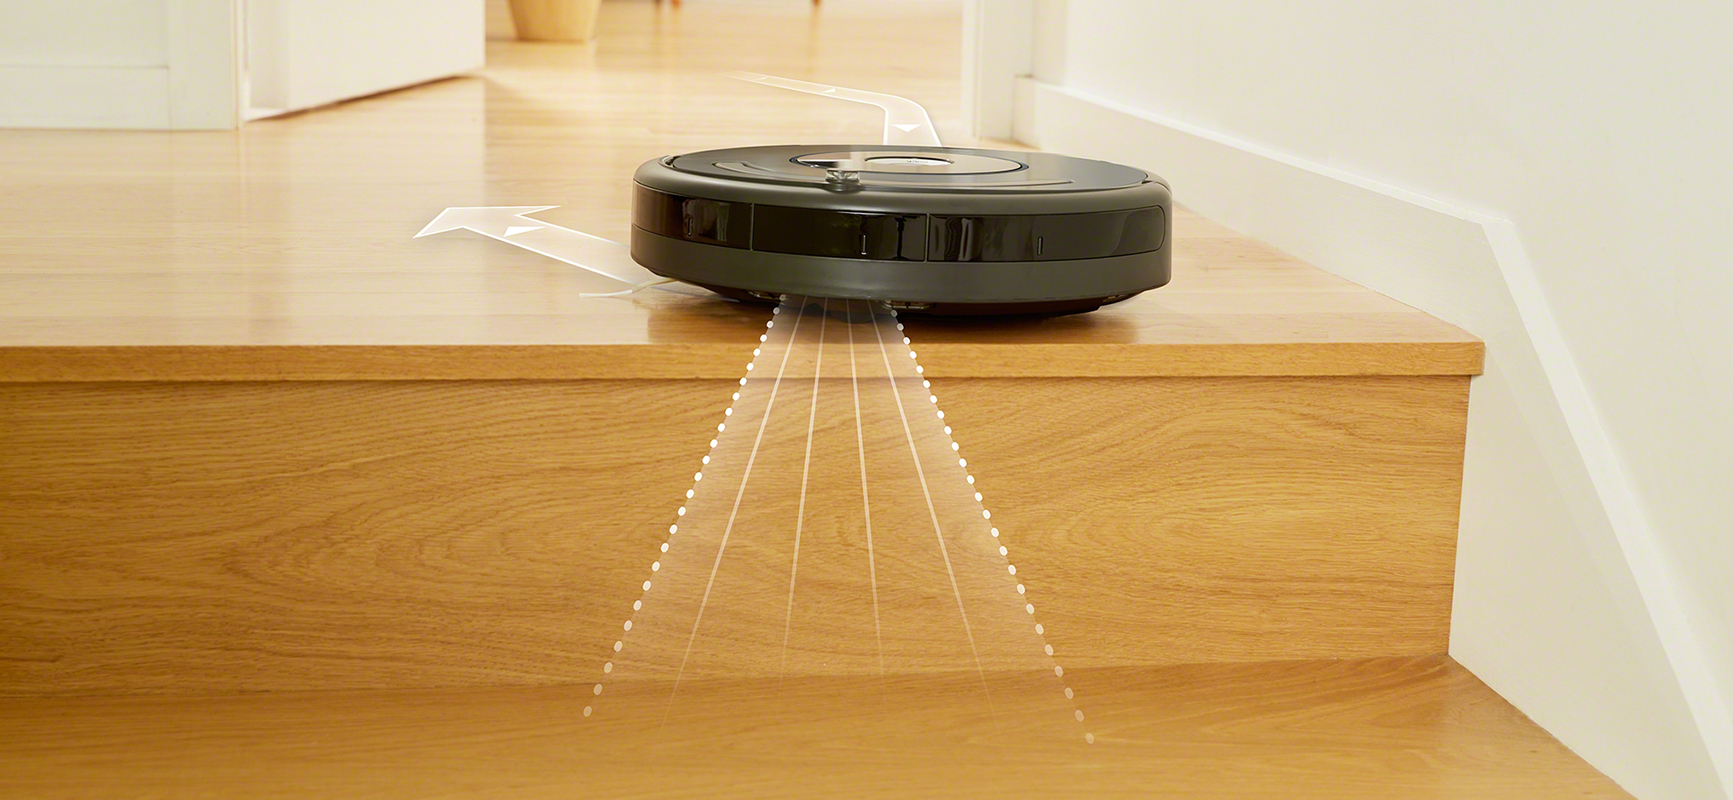 iRobot's Roomba 600 series using dirt detect feature